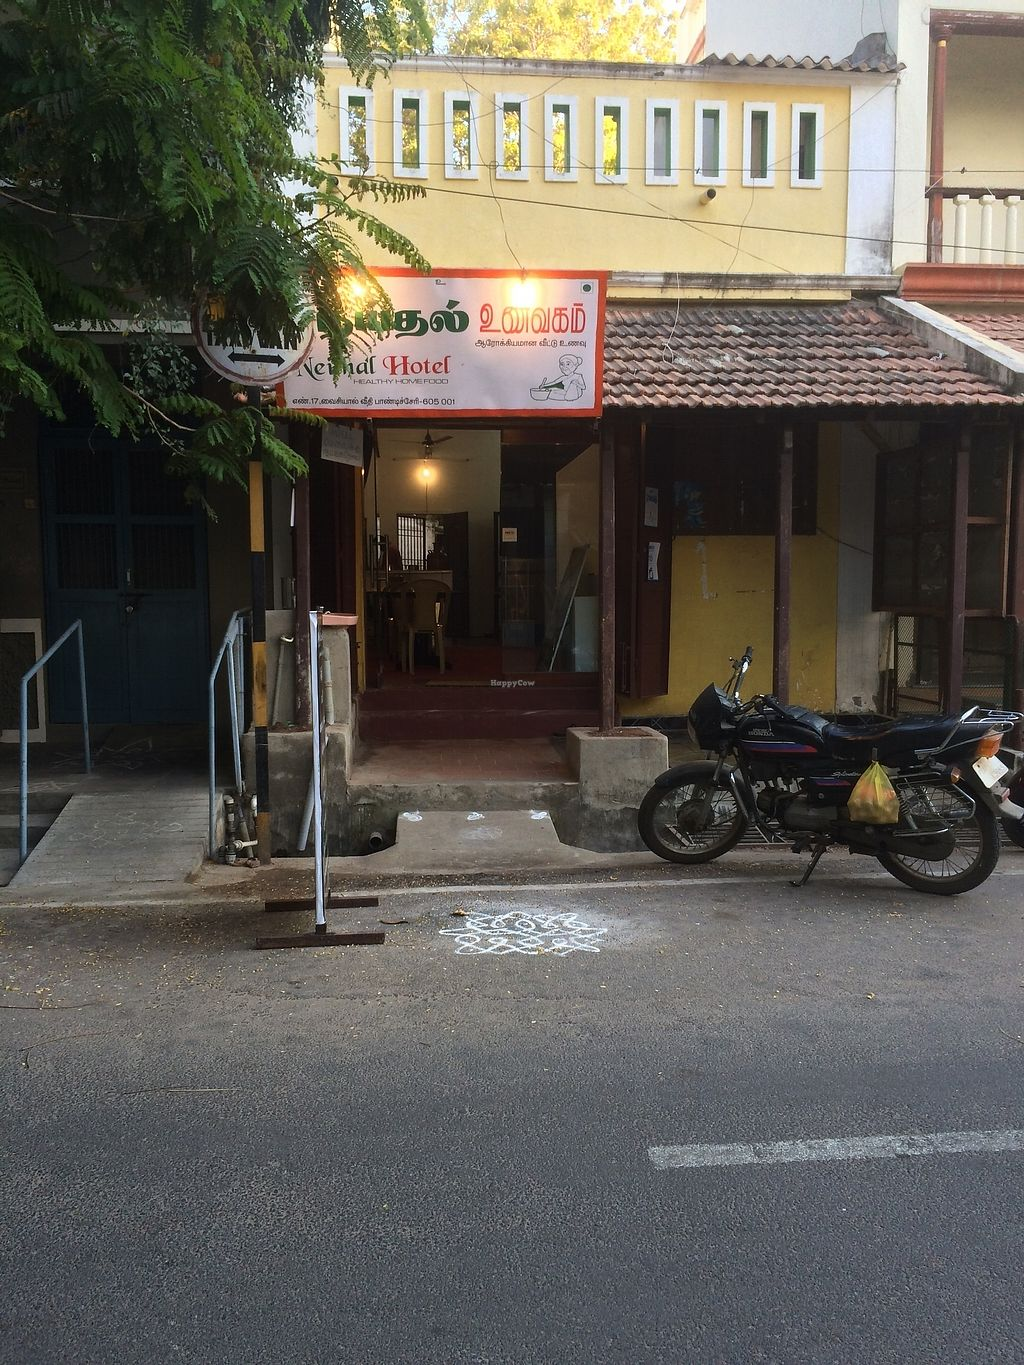 """Photo of Neithal Hotel  by <a href=""""/members/profile/Yo5h"""">Yo5h</a> <br/>view from street <br/> March 6, 2018  - <a href='/contact/abuse/image/113774/367322'>Report</a>"""